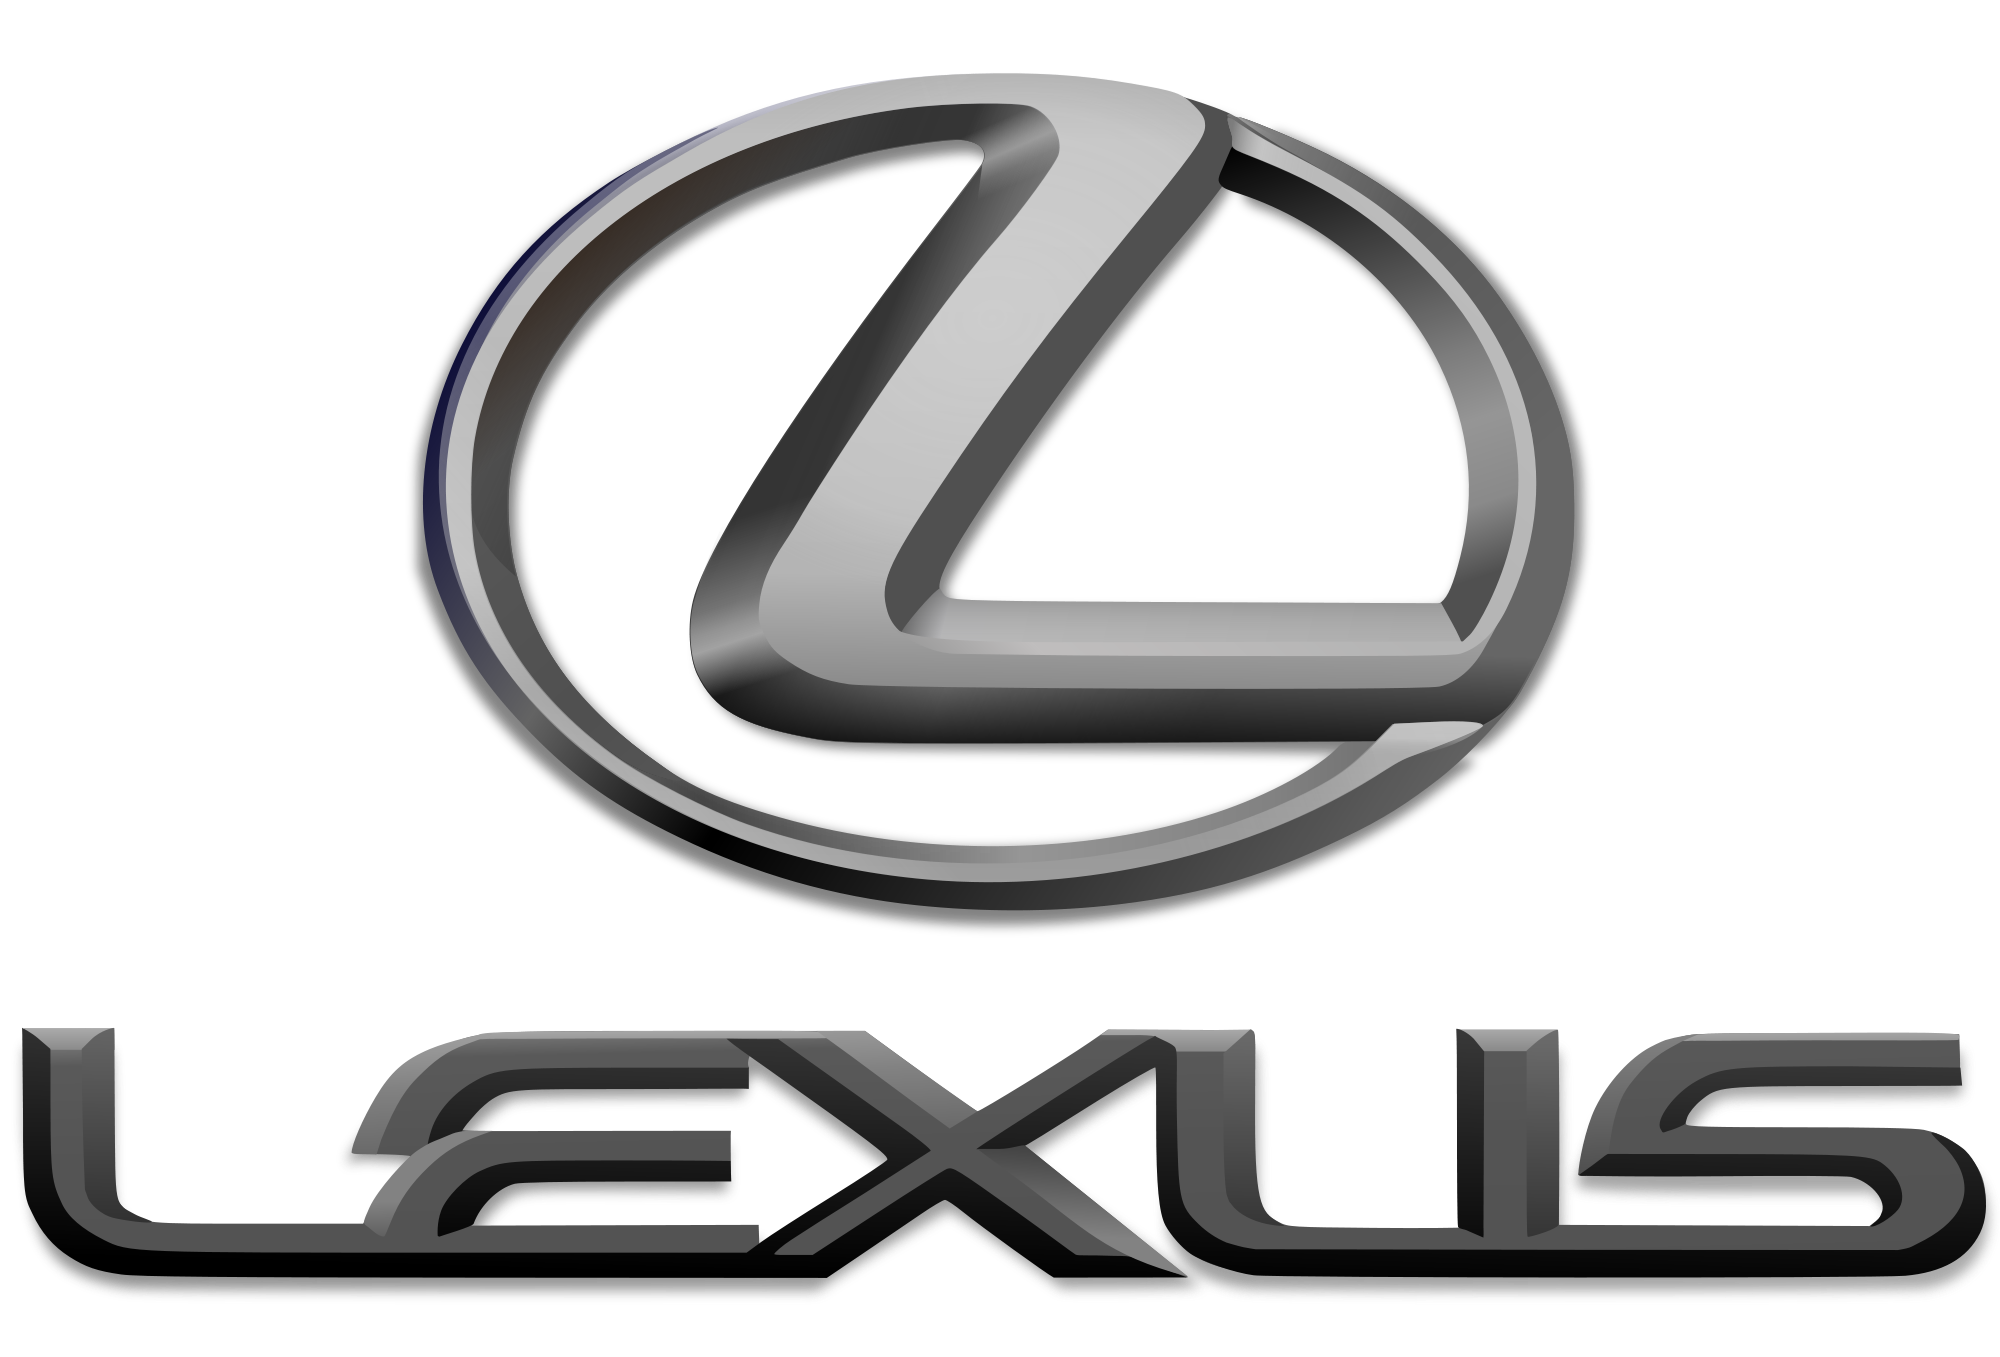 Clipart car logo. Cars images and names